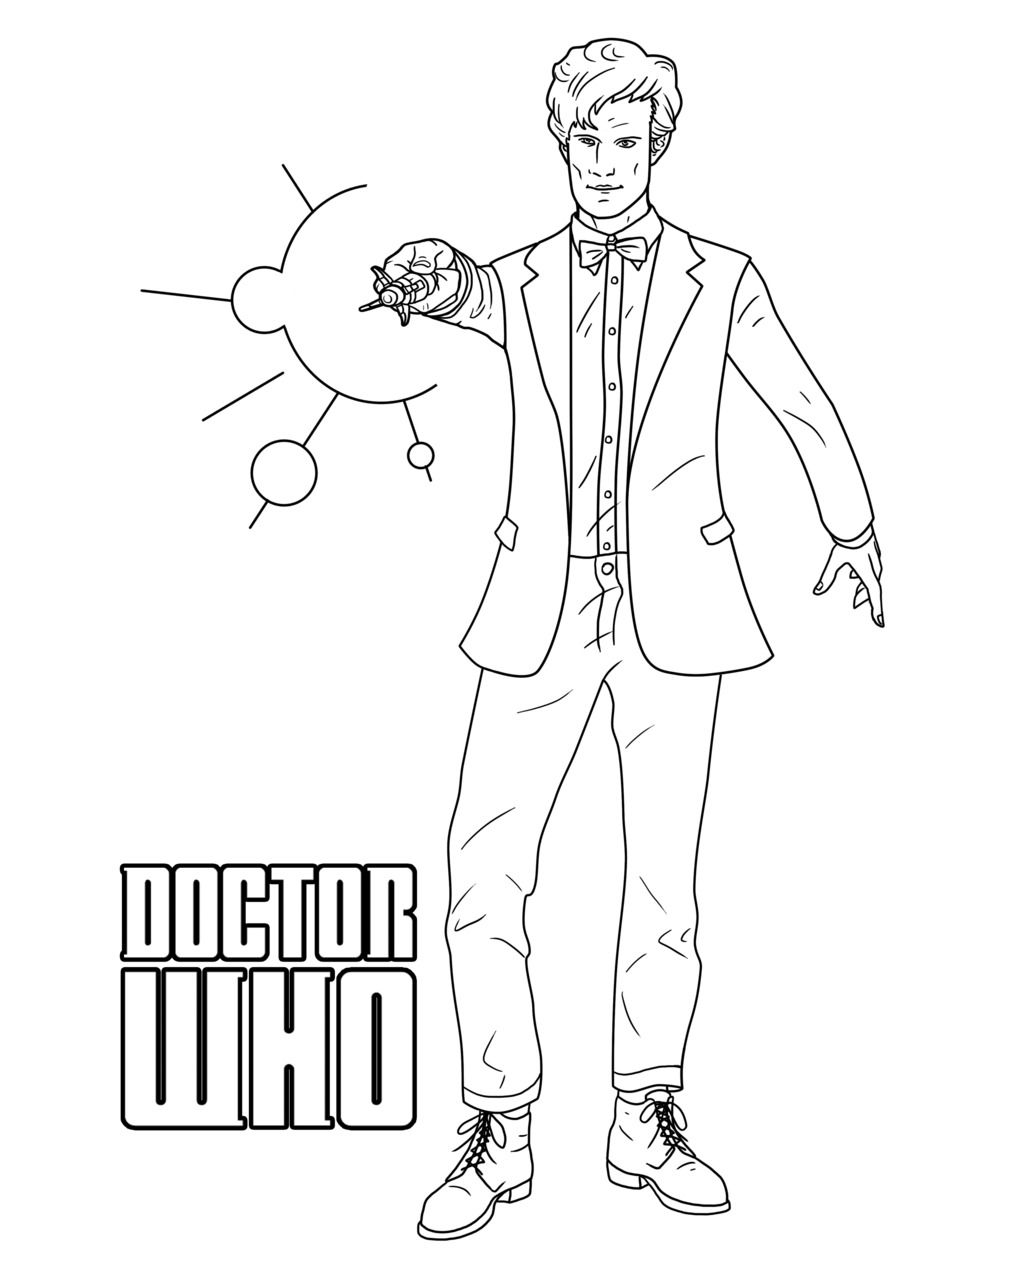 Doctor Who Coloring Pages Coloring Pages Doctor Who Coloring